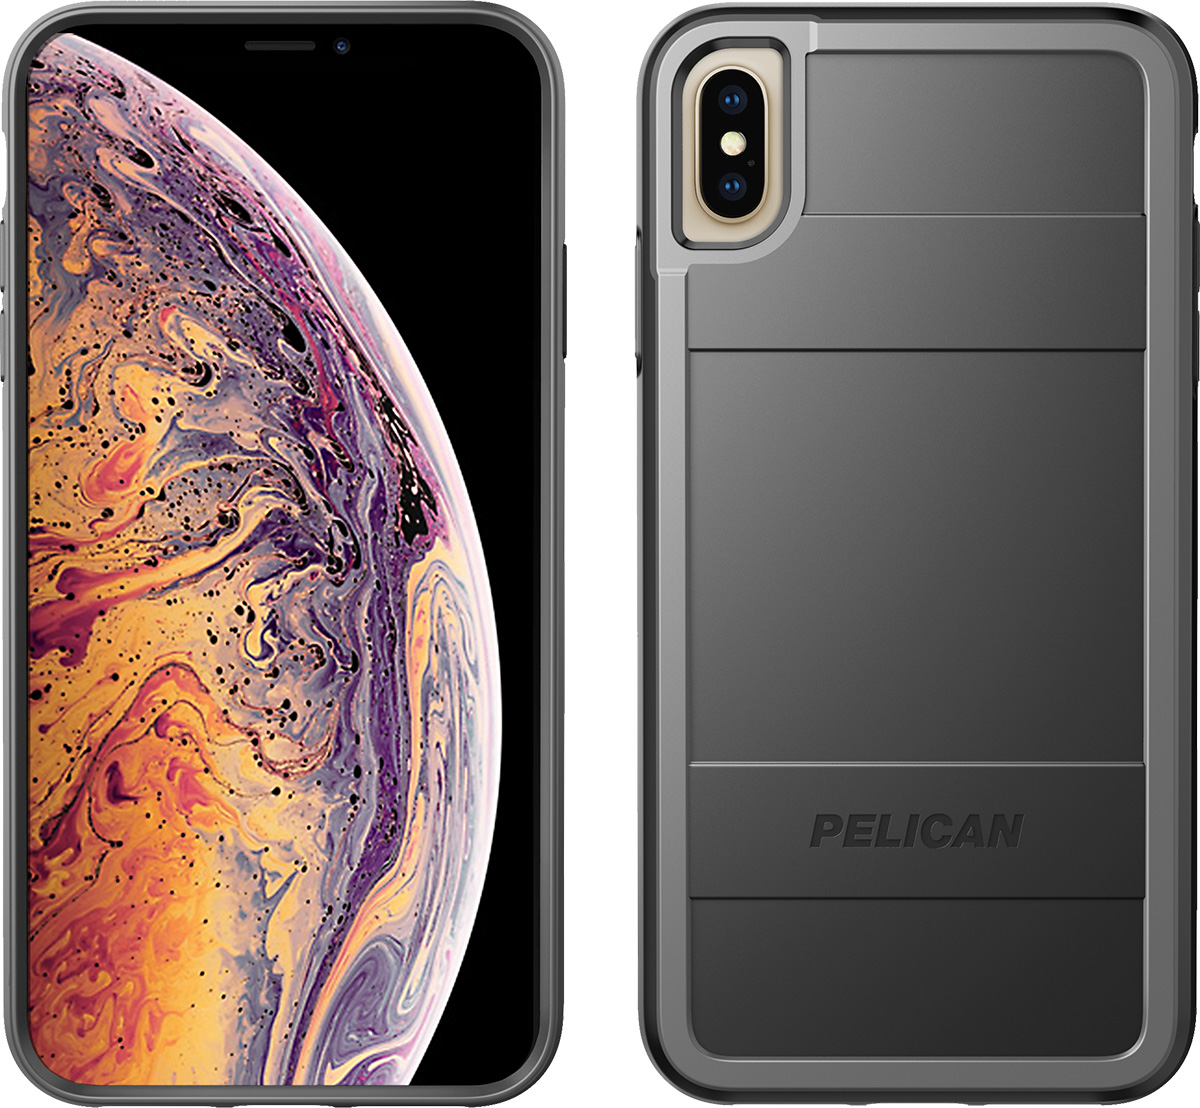 pelican c43000 apple iphone protector black grey phone case